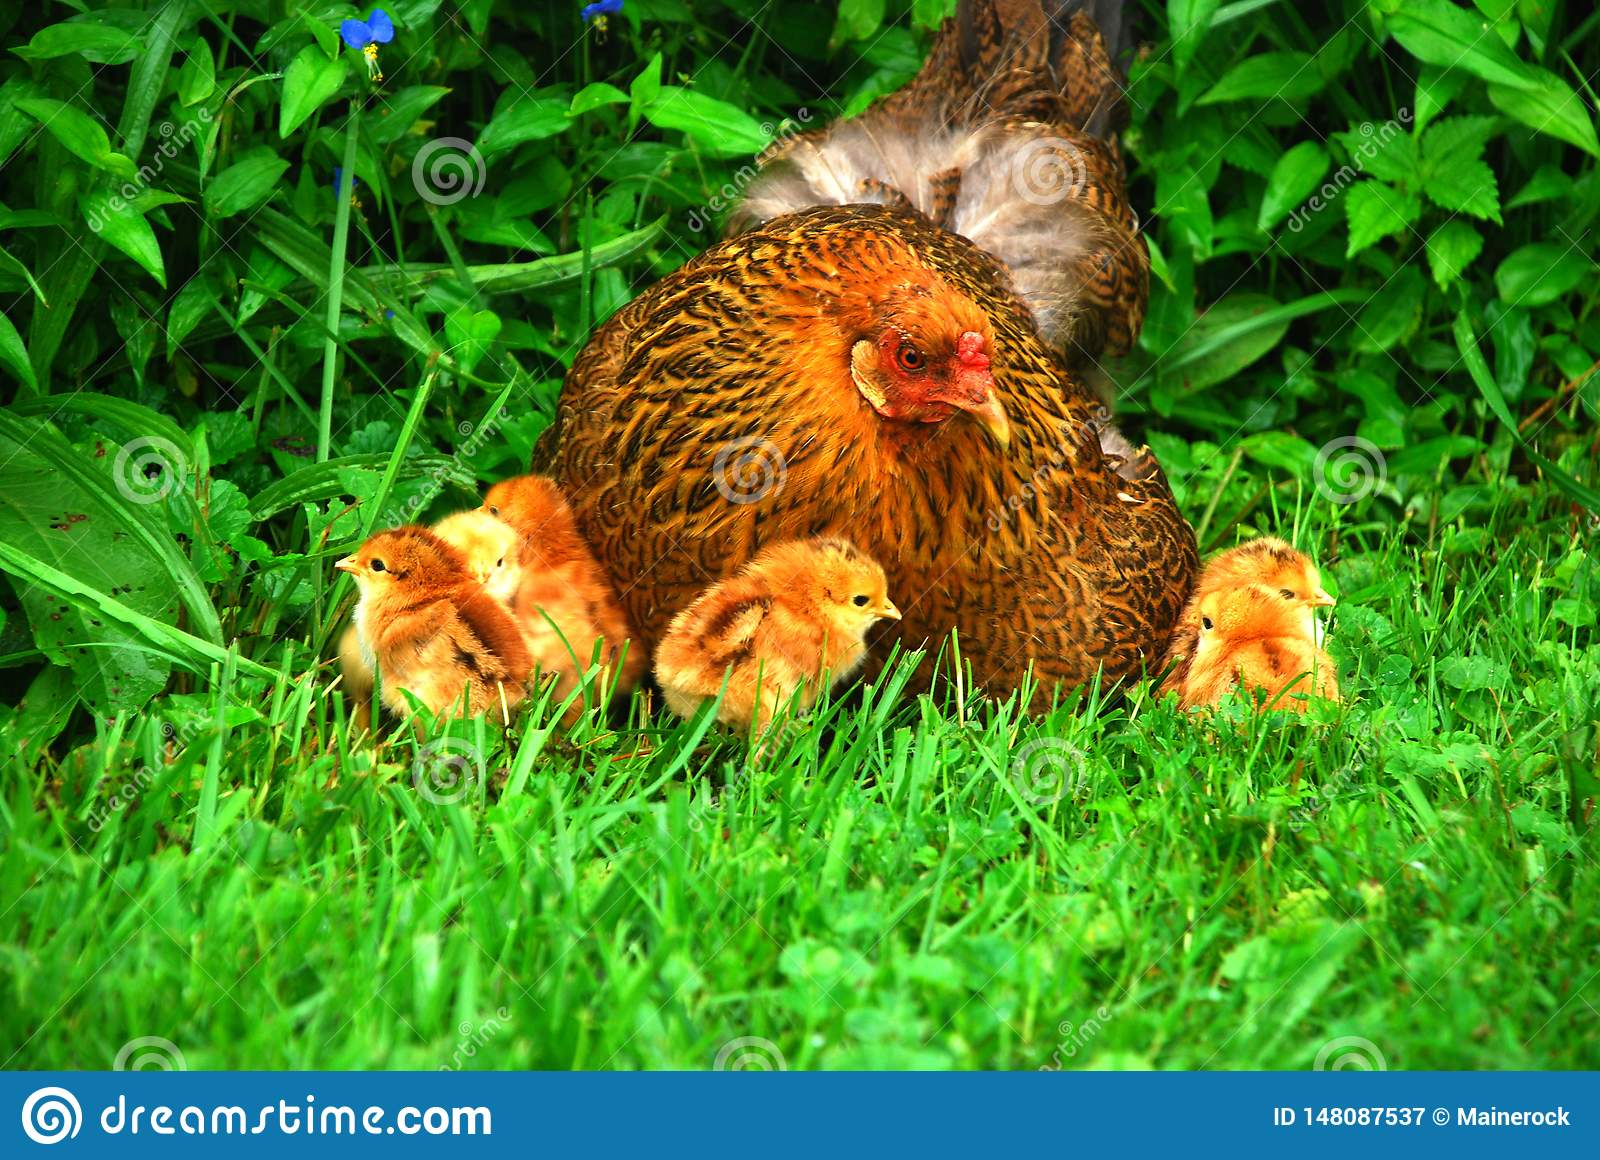 Mother hen surrounded by her chicks